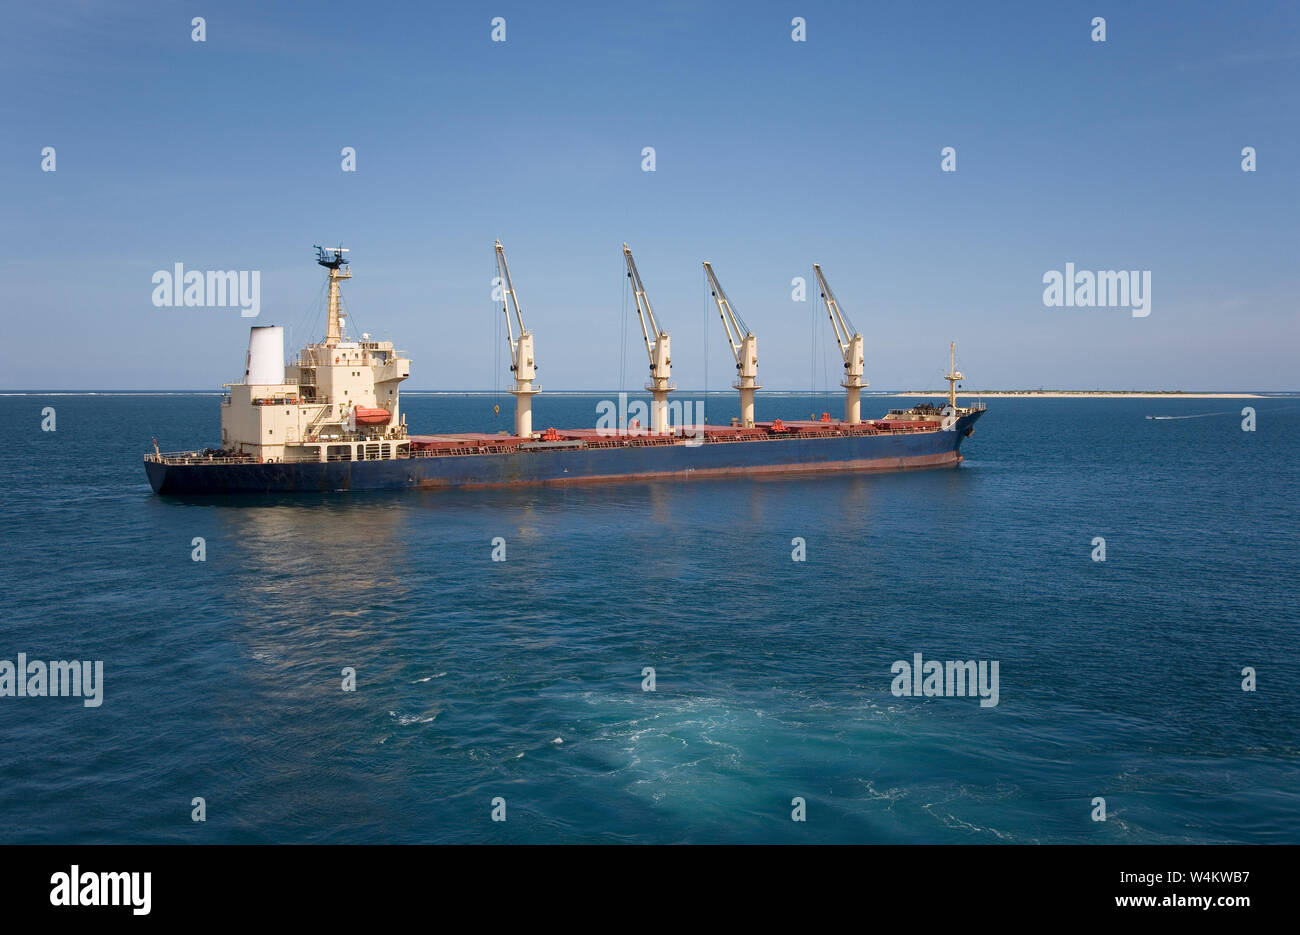 Mining, managing & transporting of titanium mineral sands. Bulk carrier with cargo of titanium mineral sands leaving deep water transhipment point. Stock Photo